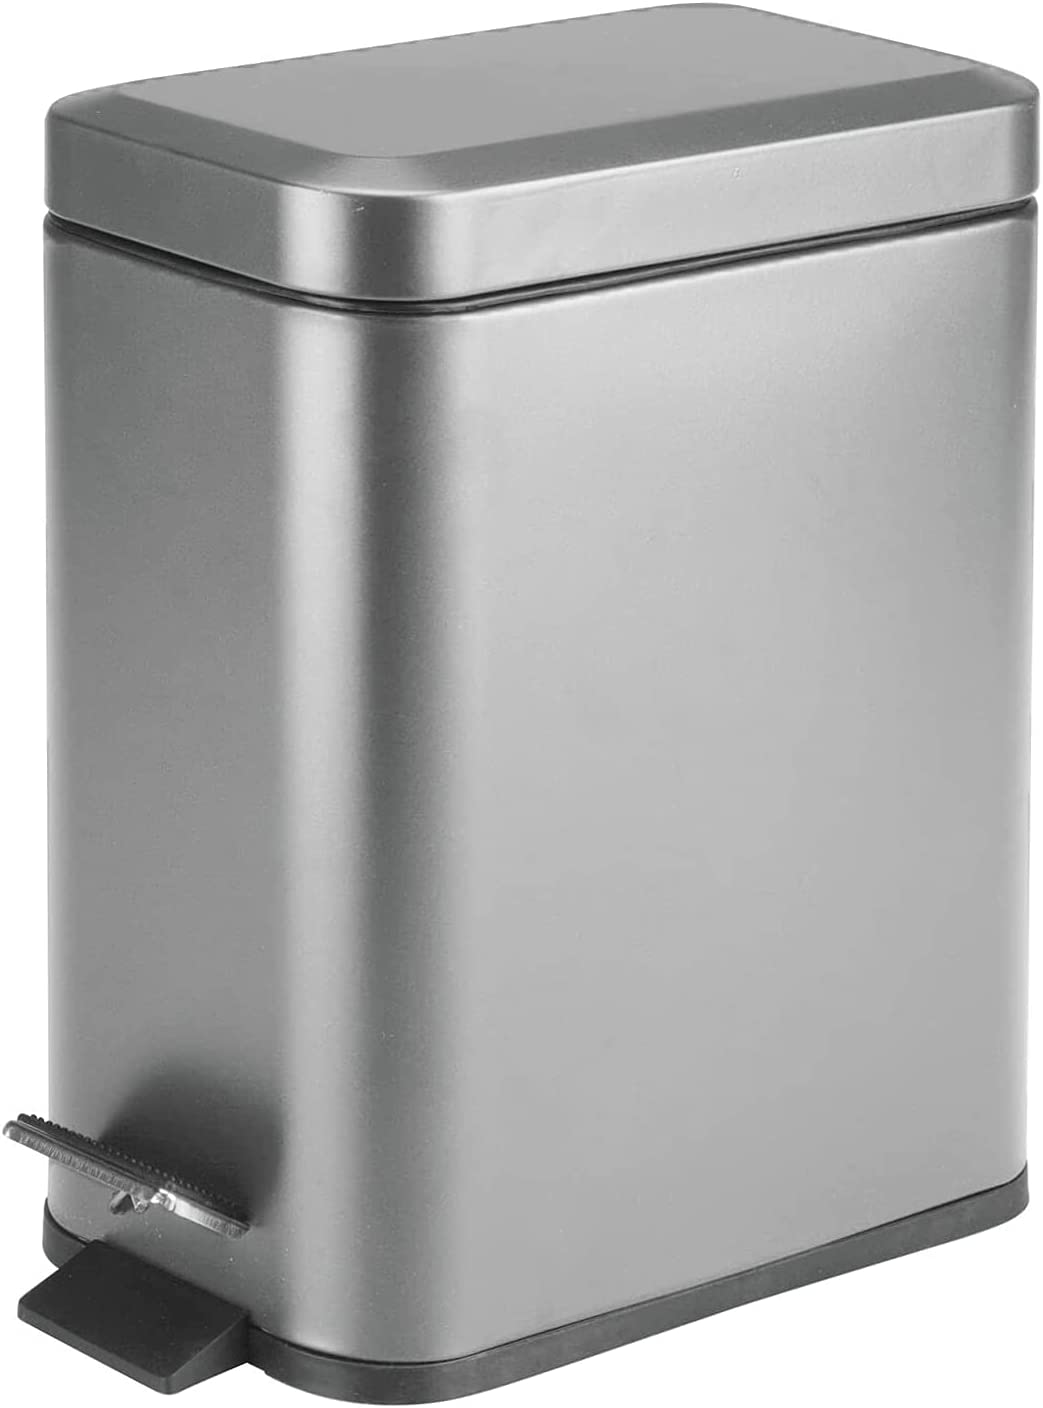 Soft Close Lid, Graphite Gray, Rectangular Trash Can 5L with Anti - Bag Slip Liner, Use as Small Waste Basket, Dust Bin, or Decor in Bathroom, Restroom, Kitchen, or Bedroom